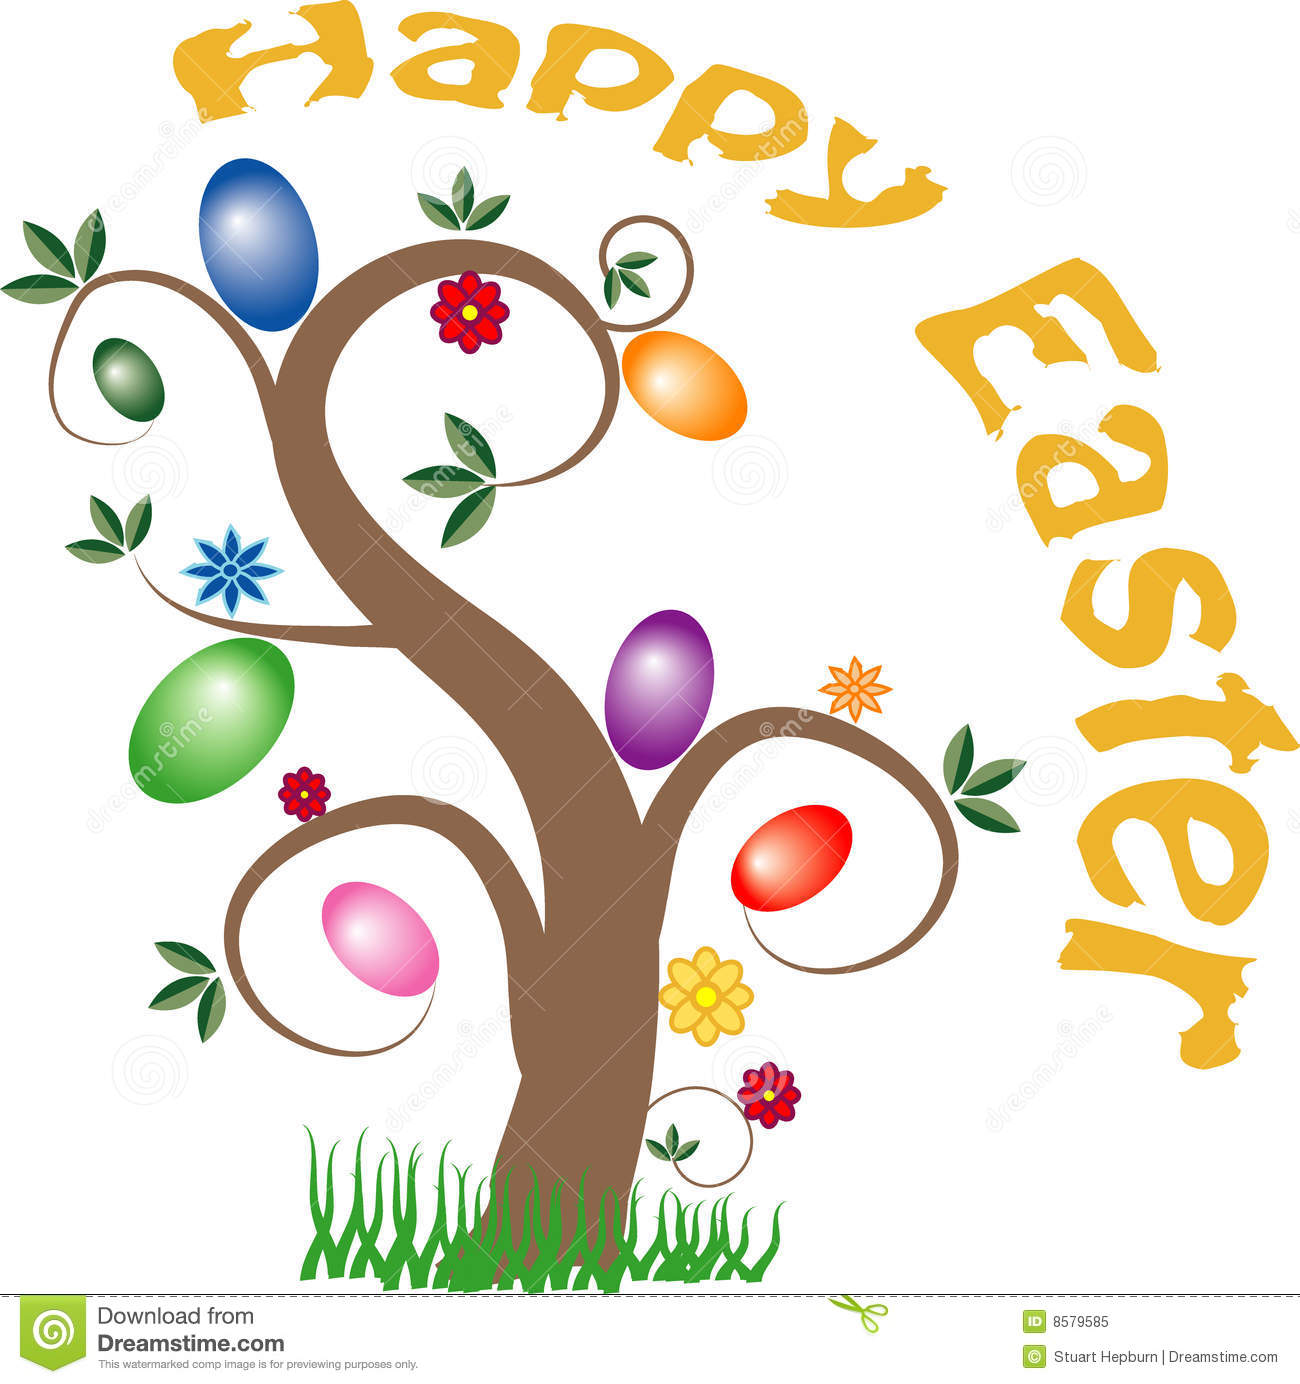 Vector image of a tree with Easter eggs hanging from the branches.